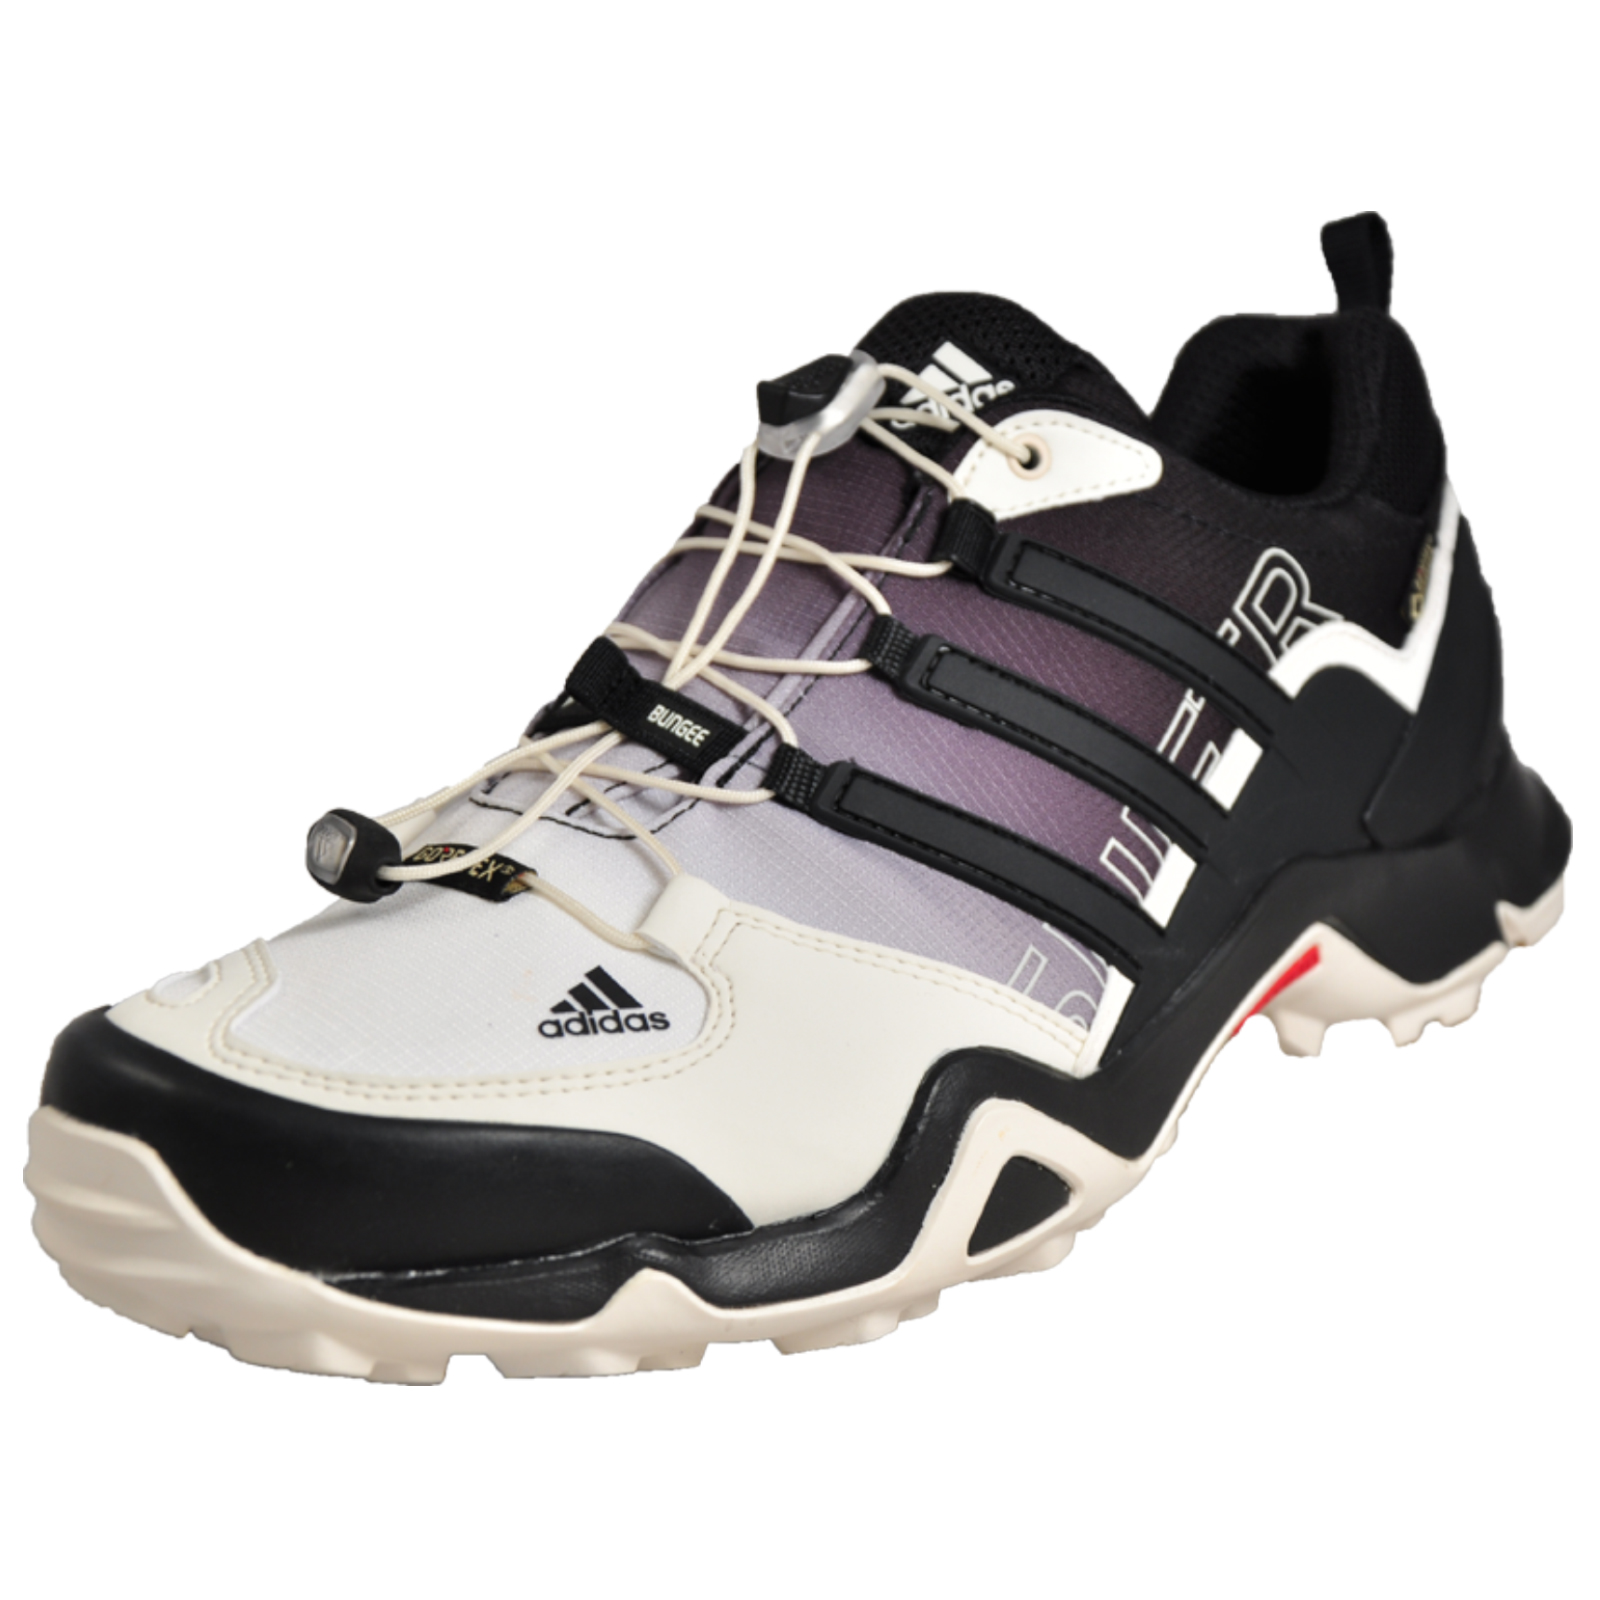 d818530bab48a Details about Adidas Terrex Swift R GTX Gore-Tex Men s Waterproof Walking  Hiking Trail Shoes T